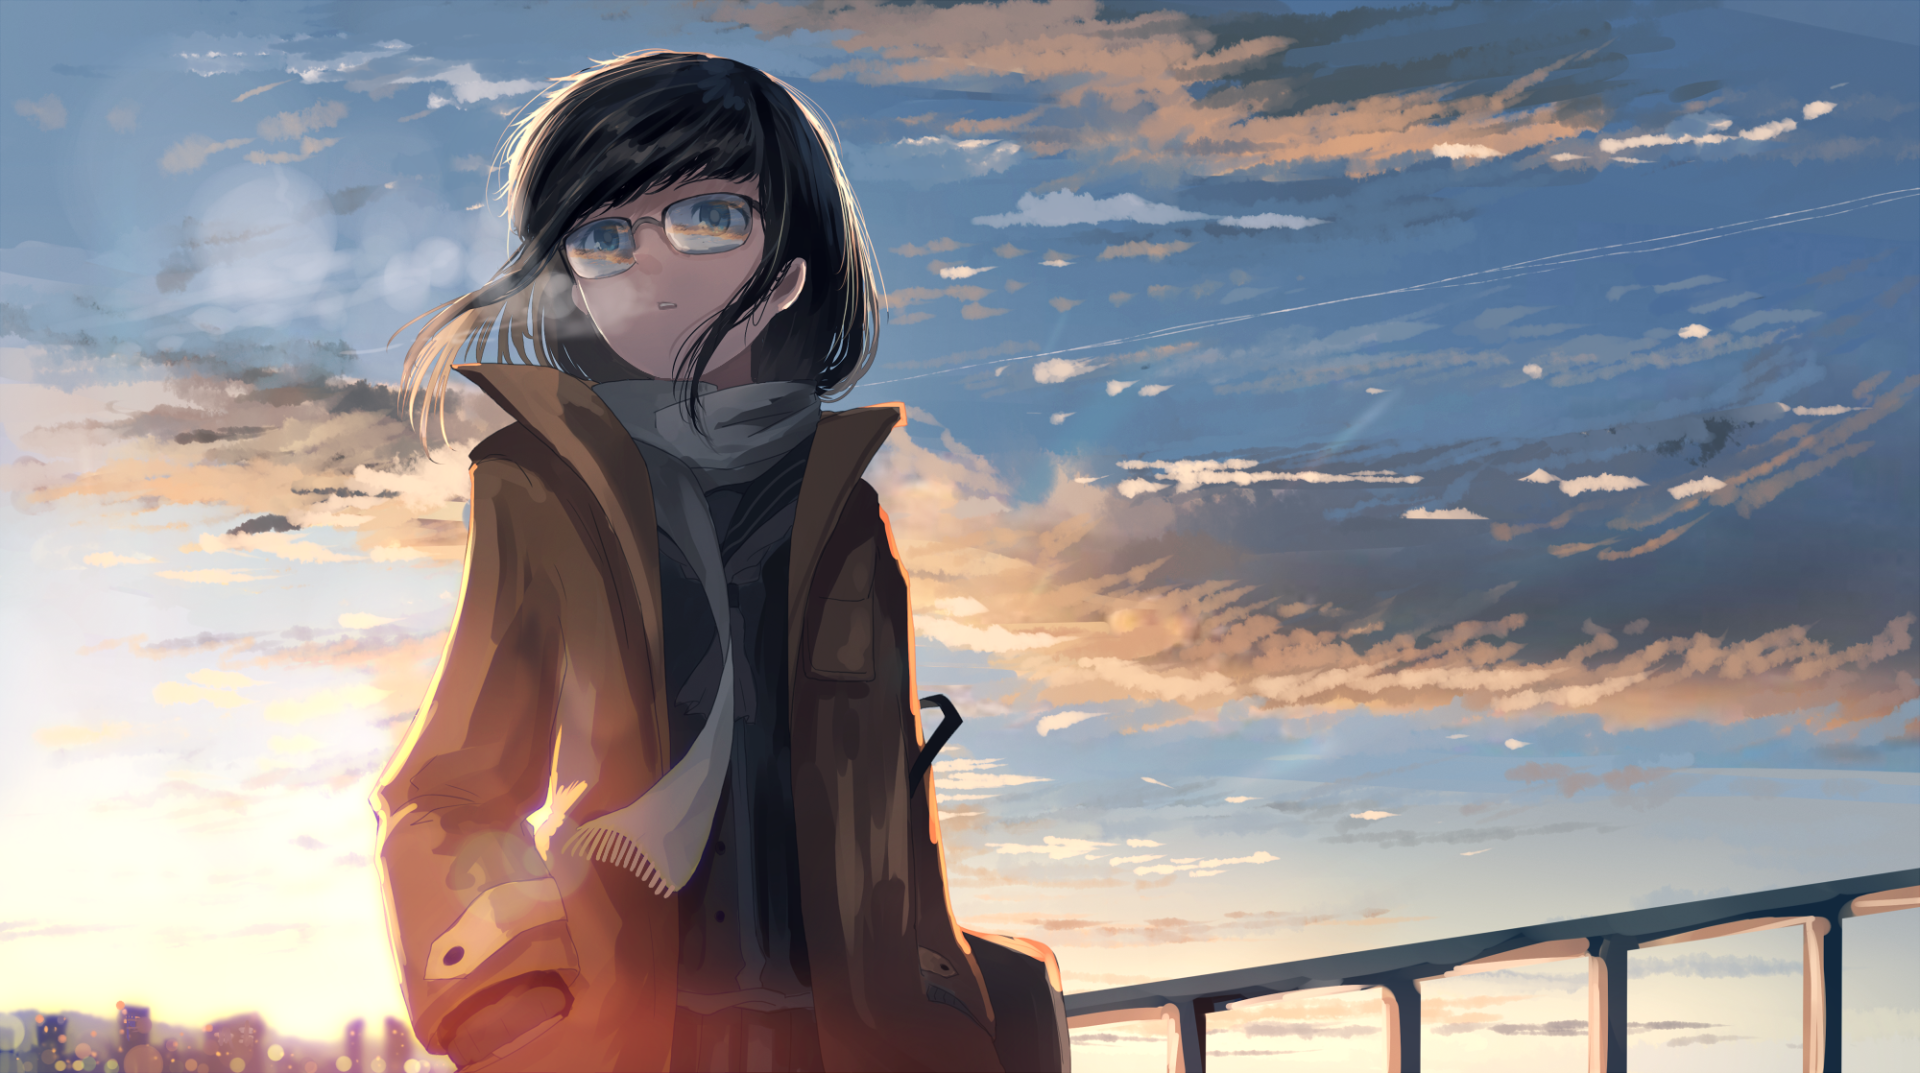 Anime - Original  Scarf Coat Cloud Black Hair Sky Glasses Girl Wallpaper